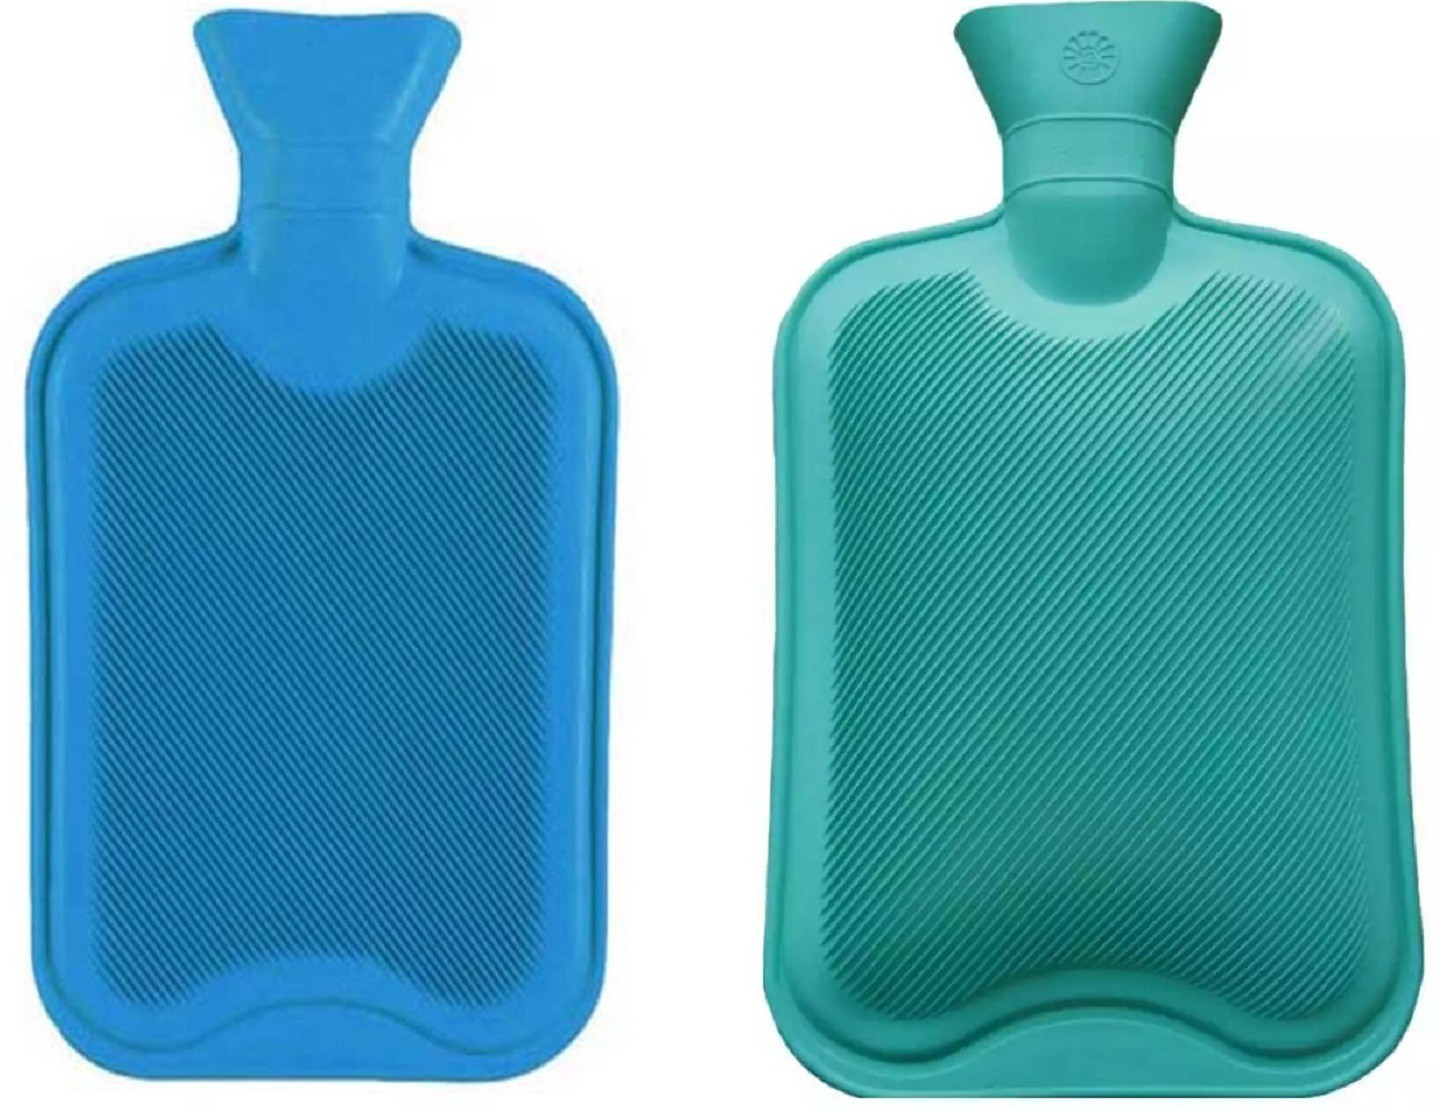 Ramco Pain Reliever Non-electrical 3 L Hot Water Bag(Blue, Green)